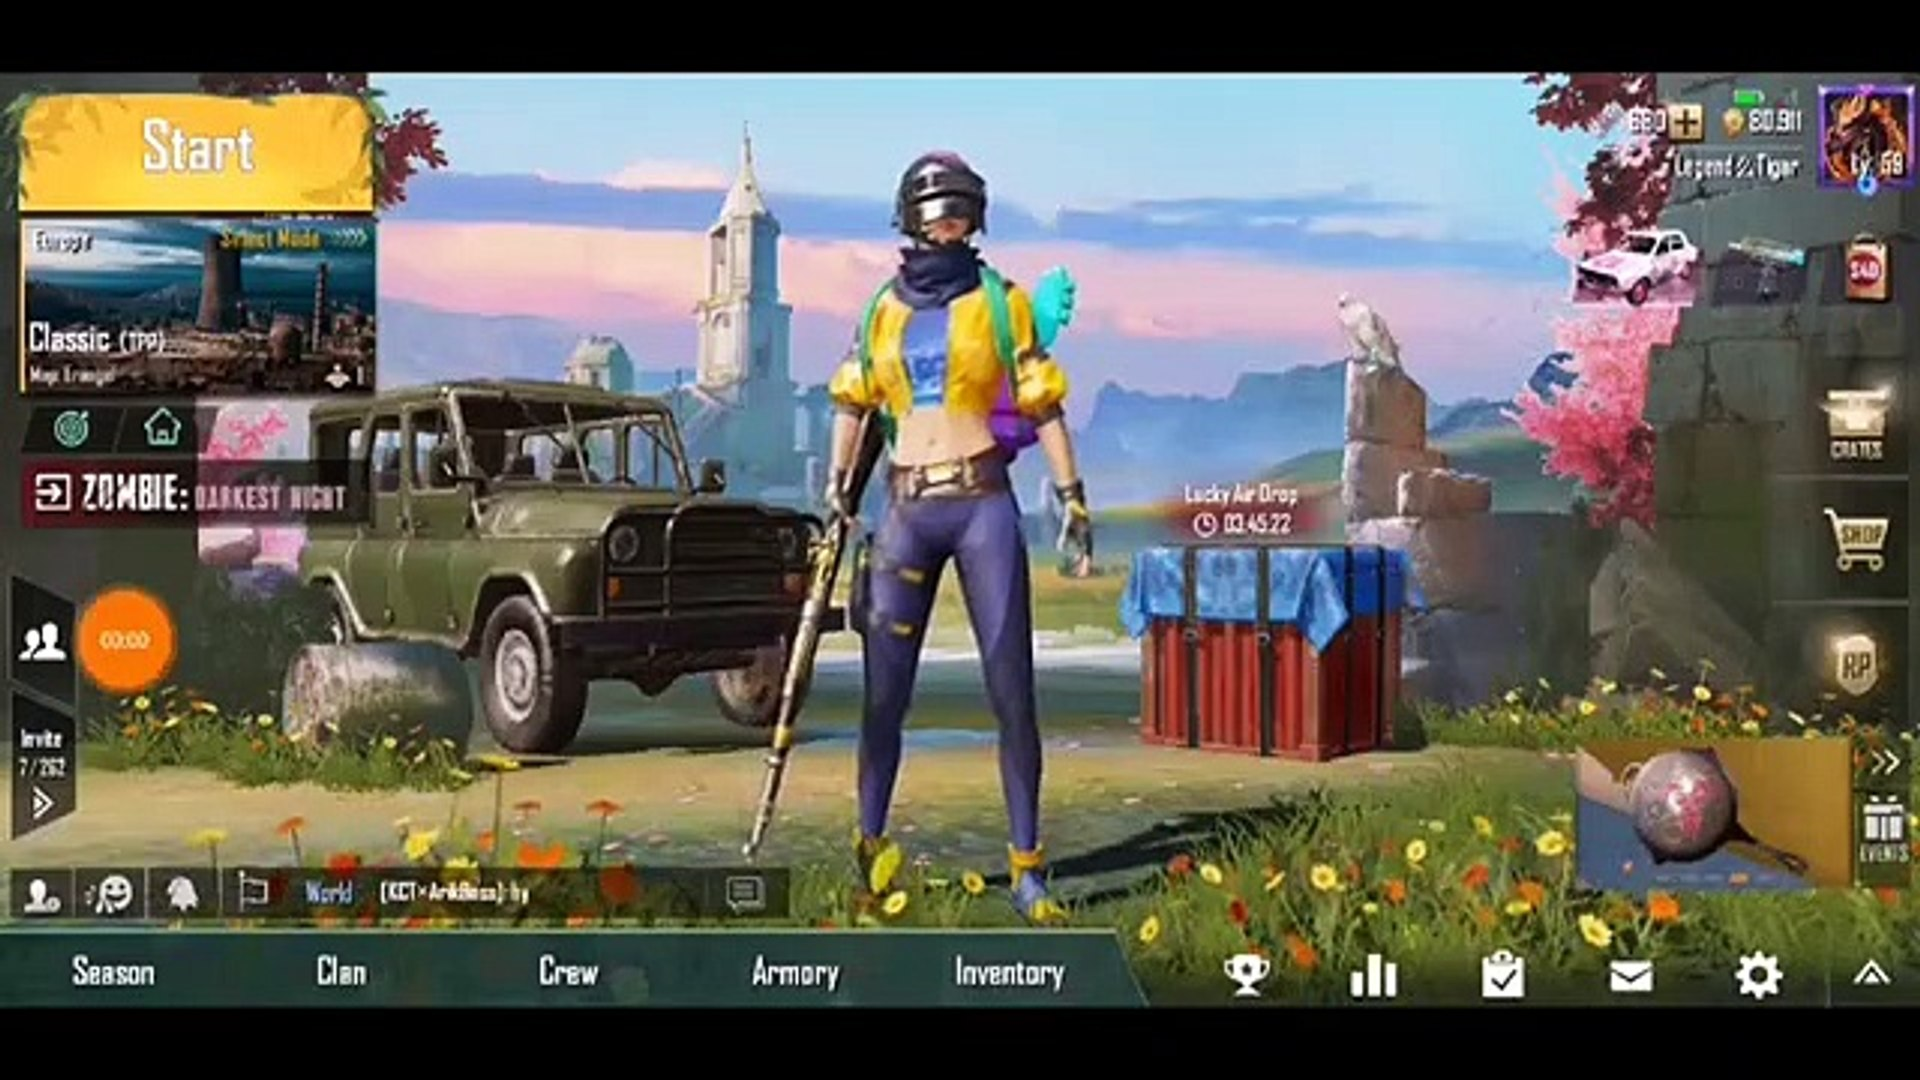 Get free parachute skin in hindi urdu Pubg mobile new item - The Pubg mission